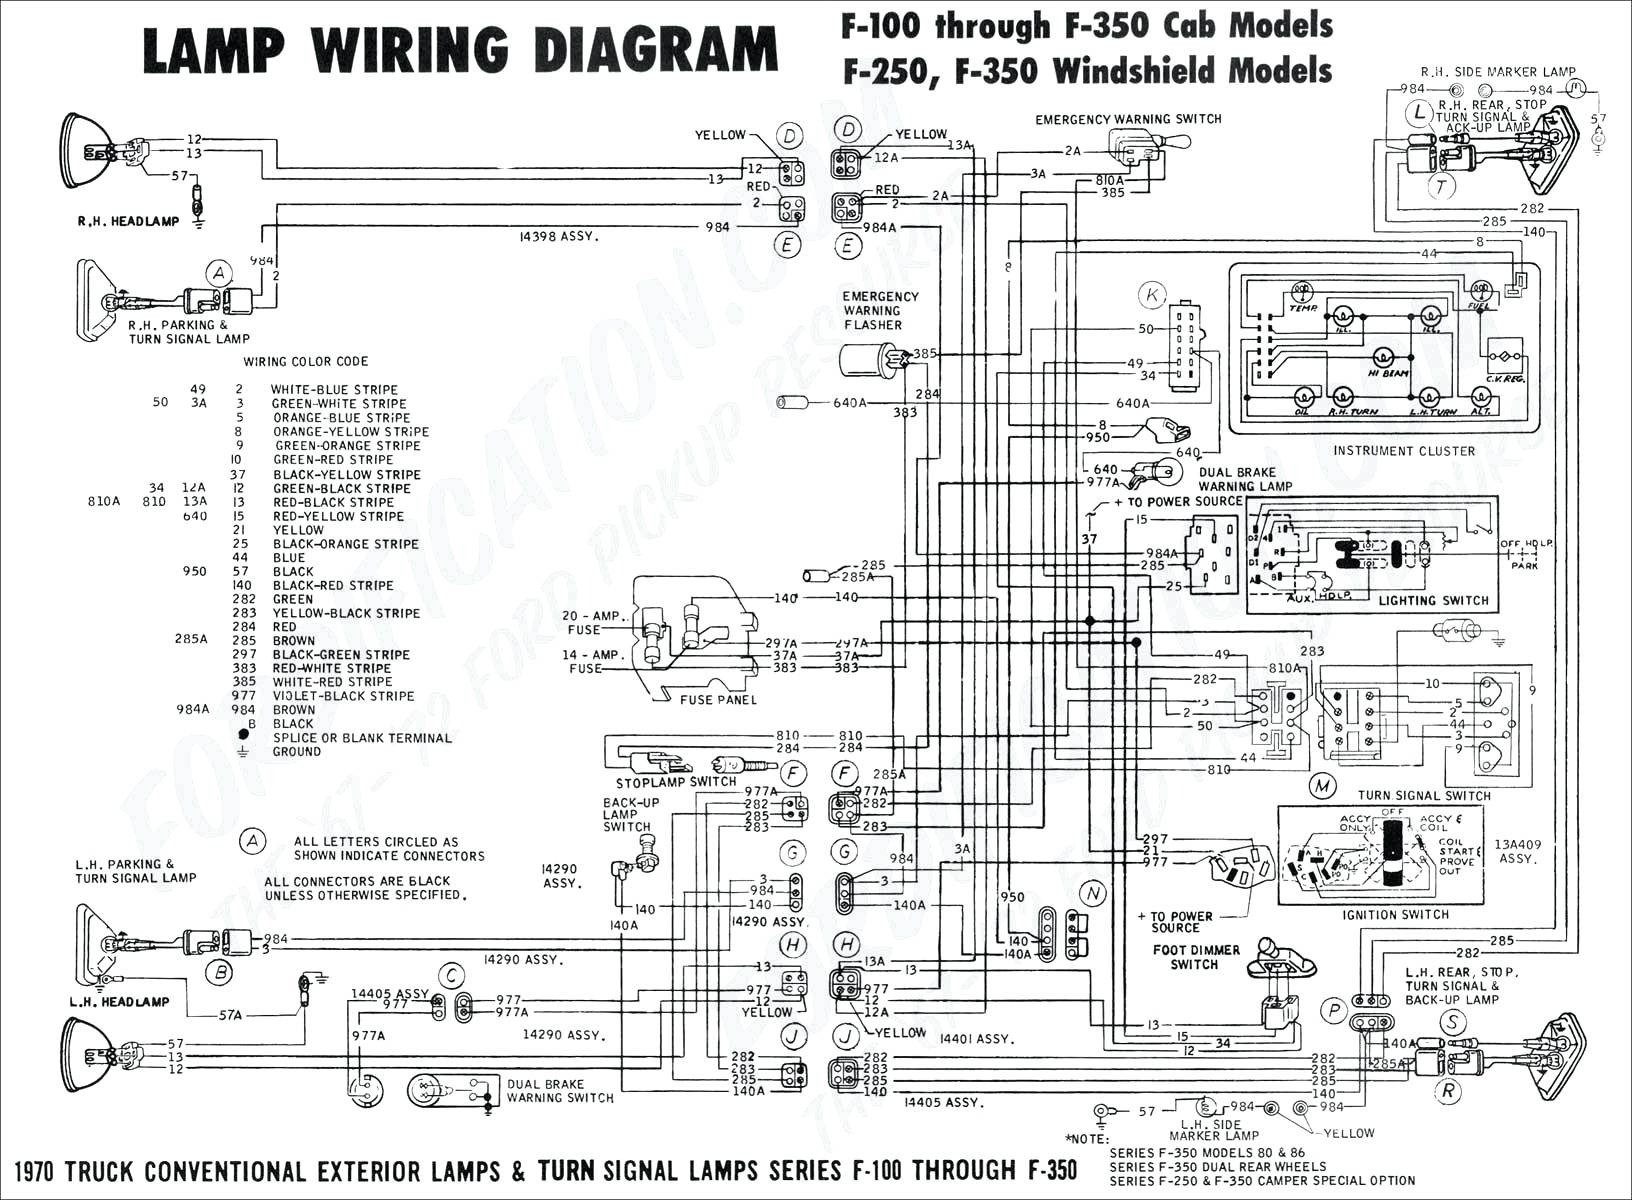 Semi trailer wiring diagram best of wiring diagram image wiring diagram ford f150 trailer lights truck best ford engine diagrams 1997 ranger diagram wiring harness asfbconference2016 Choice Image